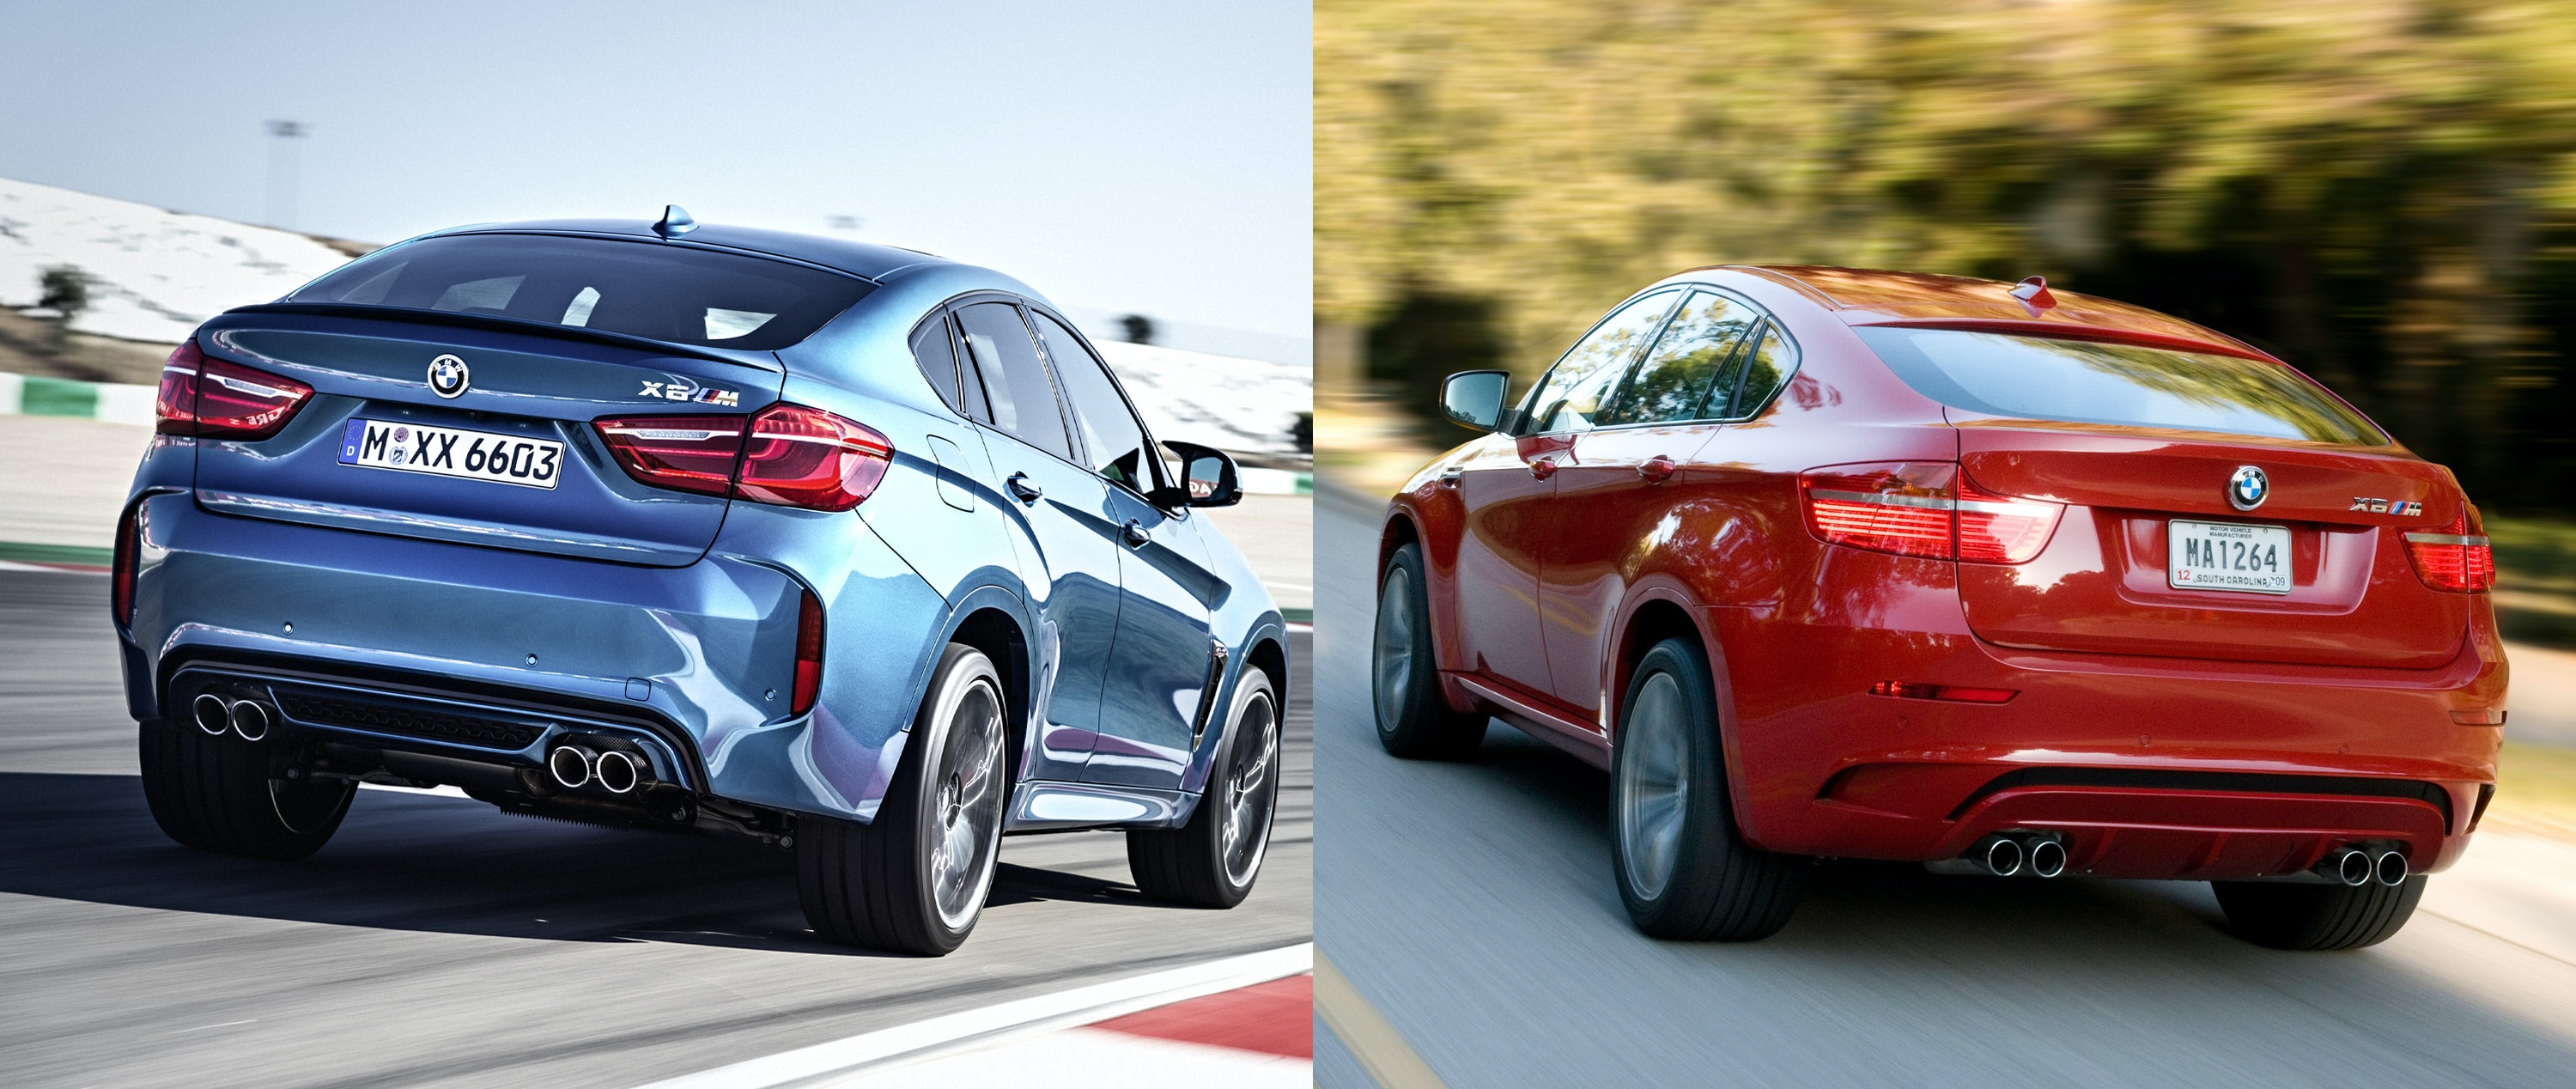 2015 Bmw X6 M Old Vs New Compared Carwow